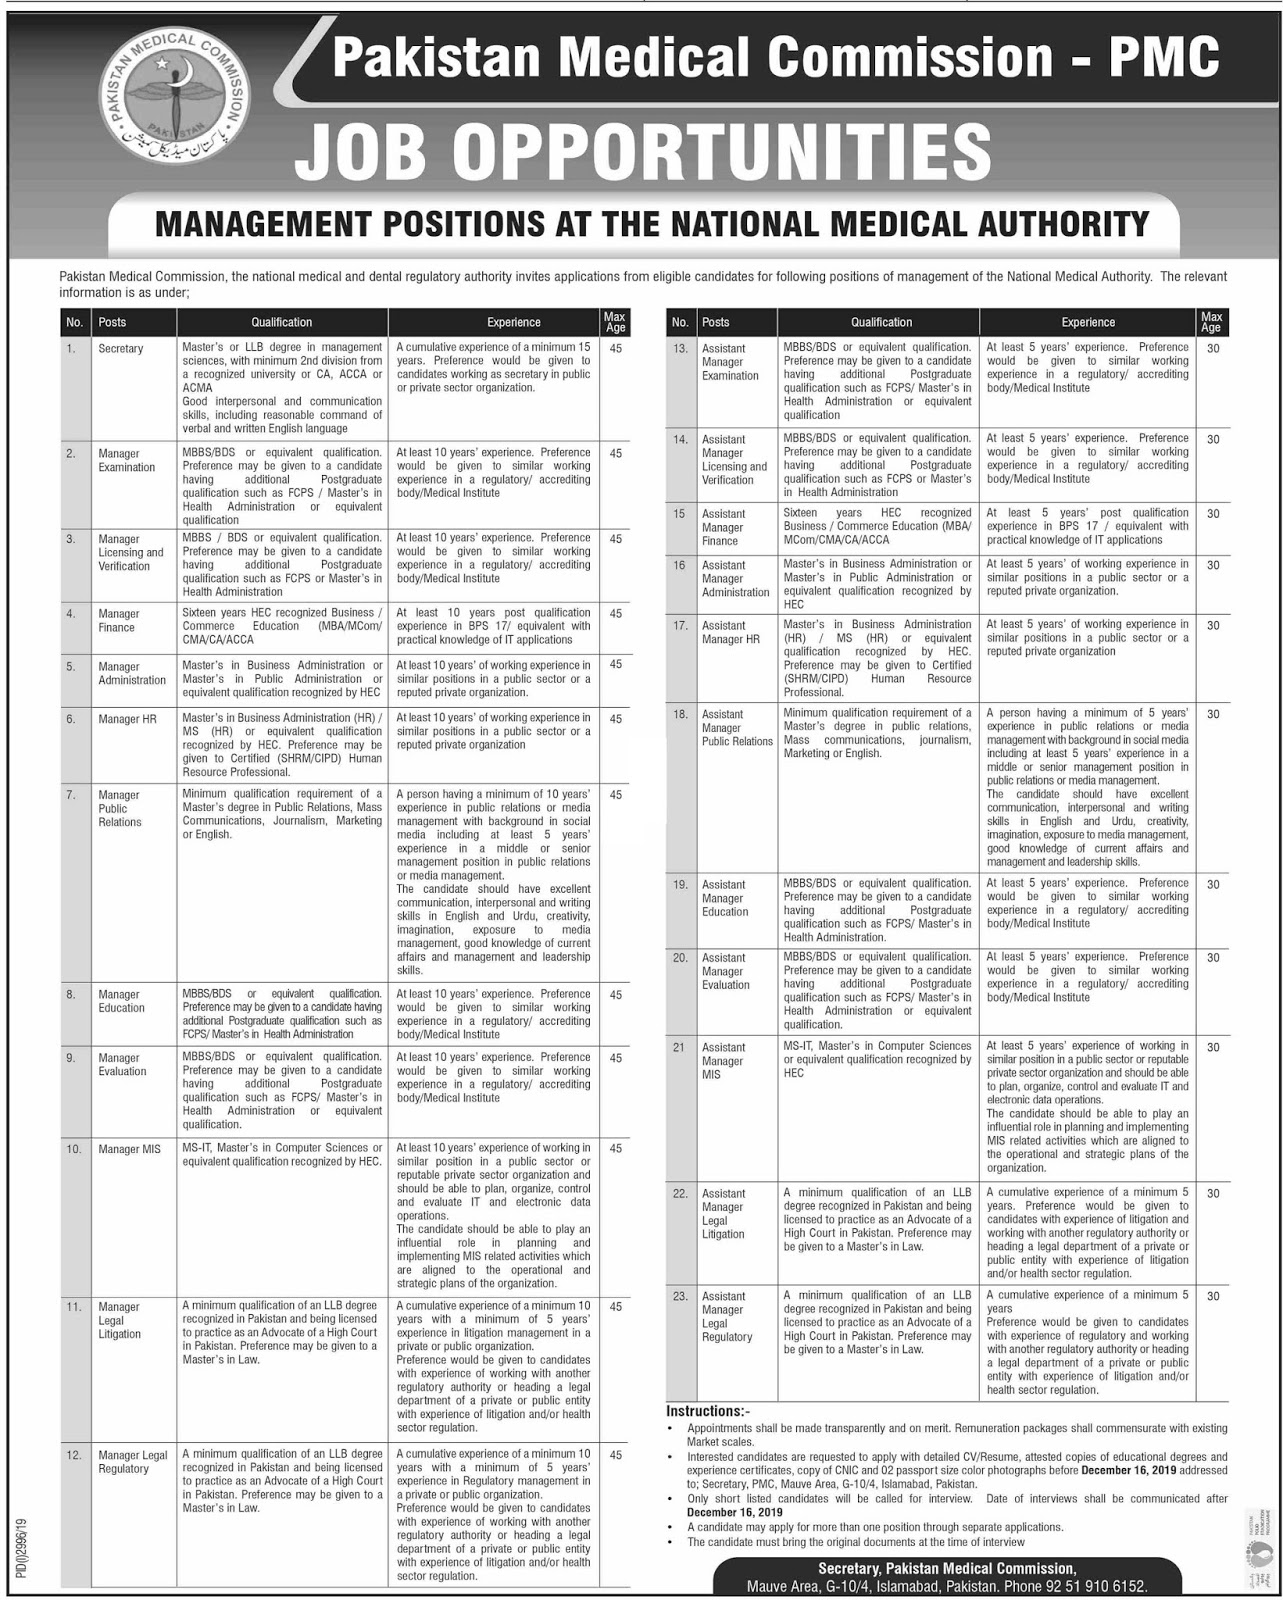 PMC Pakistan Medical Commission Jobs for Management Staff 2019